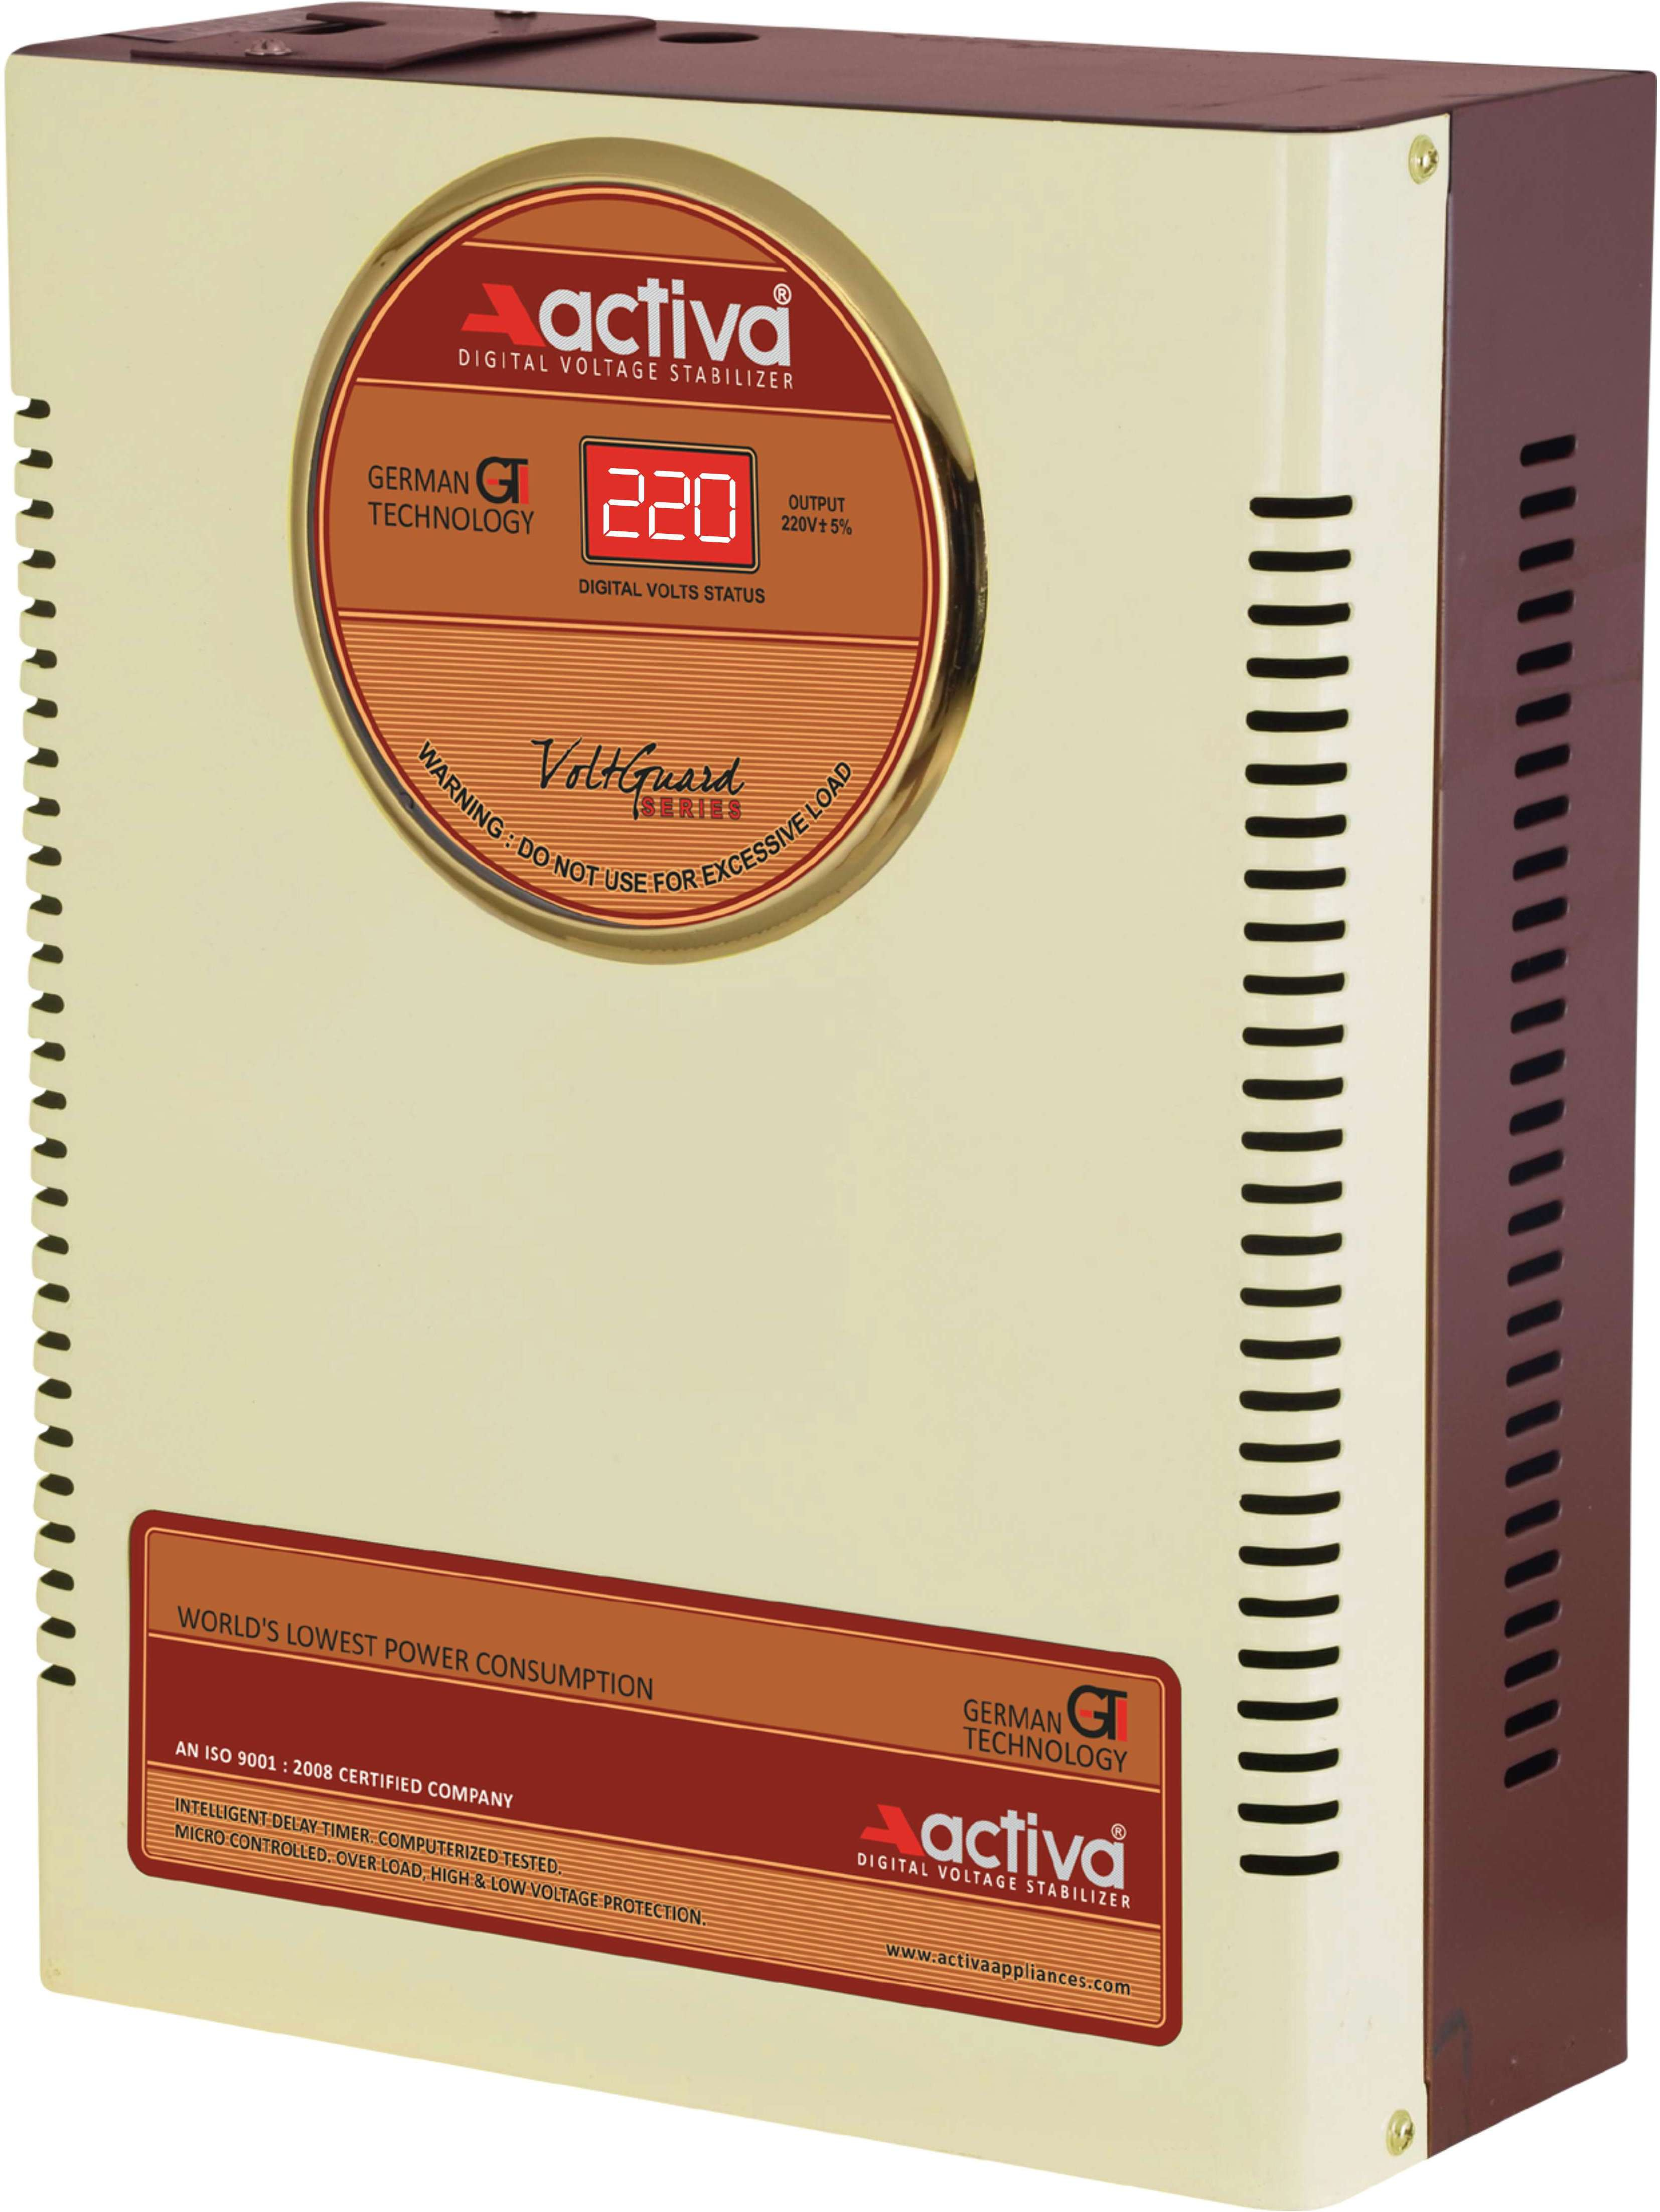 ACTIVA 4 KVA /140-300 VOLTS IVORY-BROWN DIGITAL AC VOLTAGE STABILIZER(IVORY-BROWN)